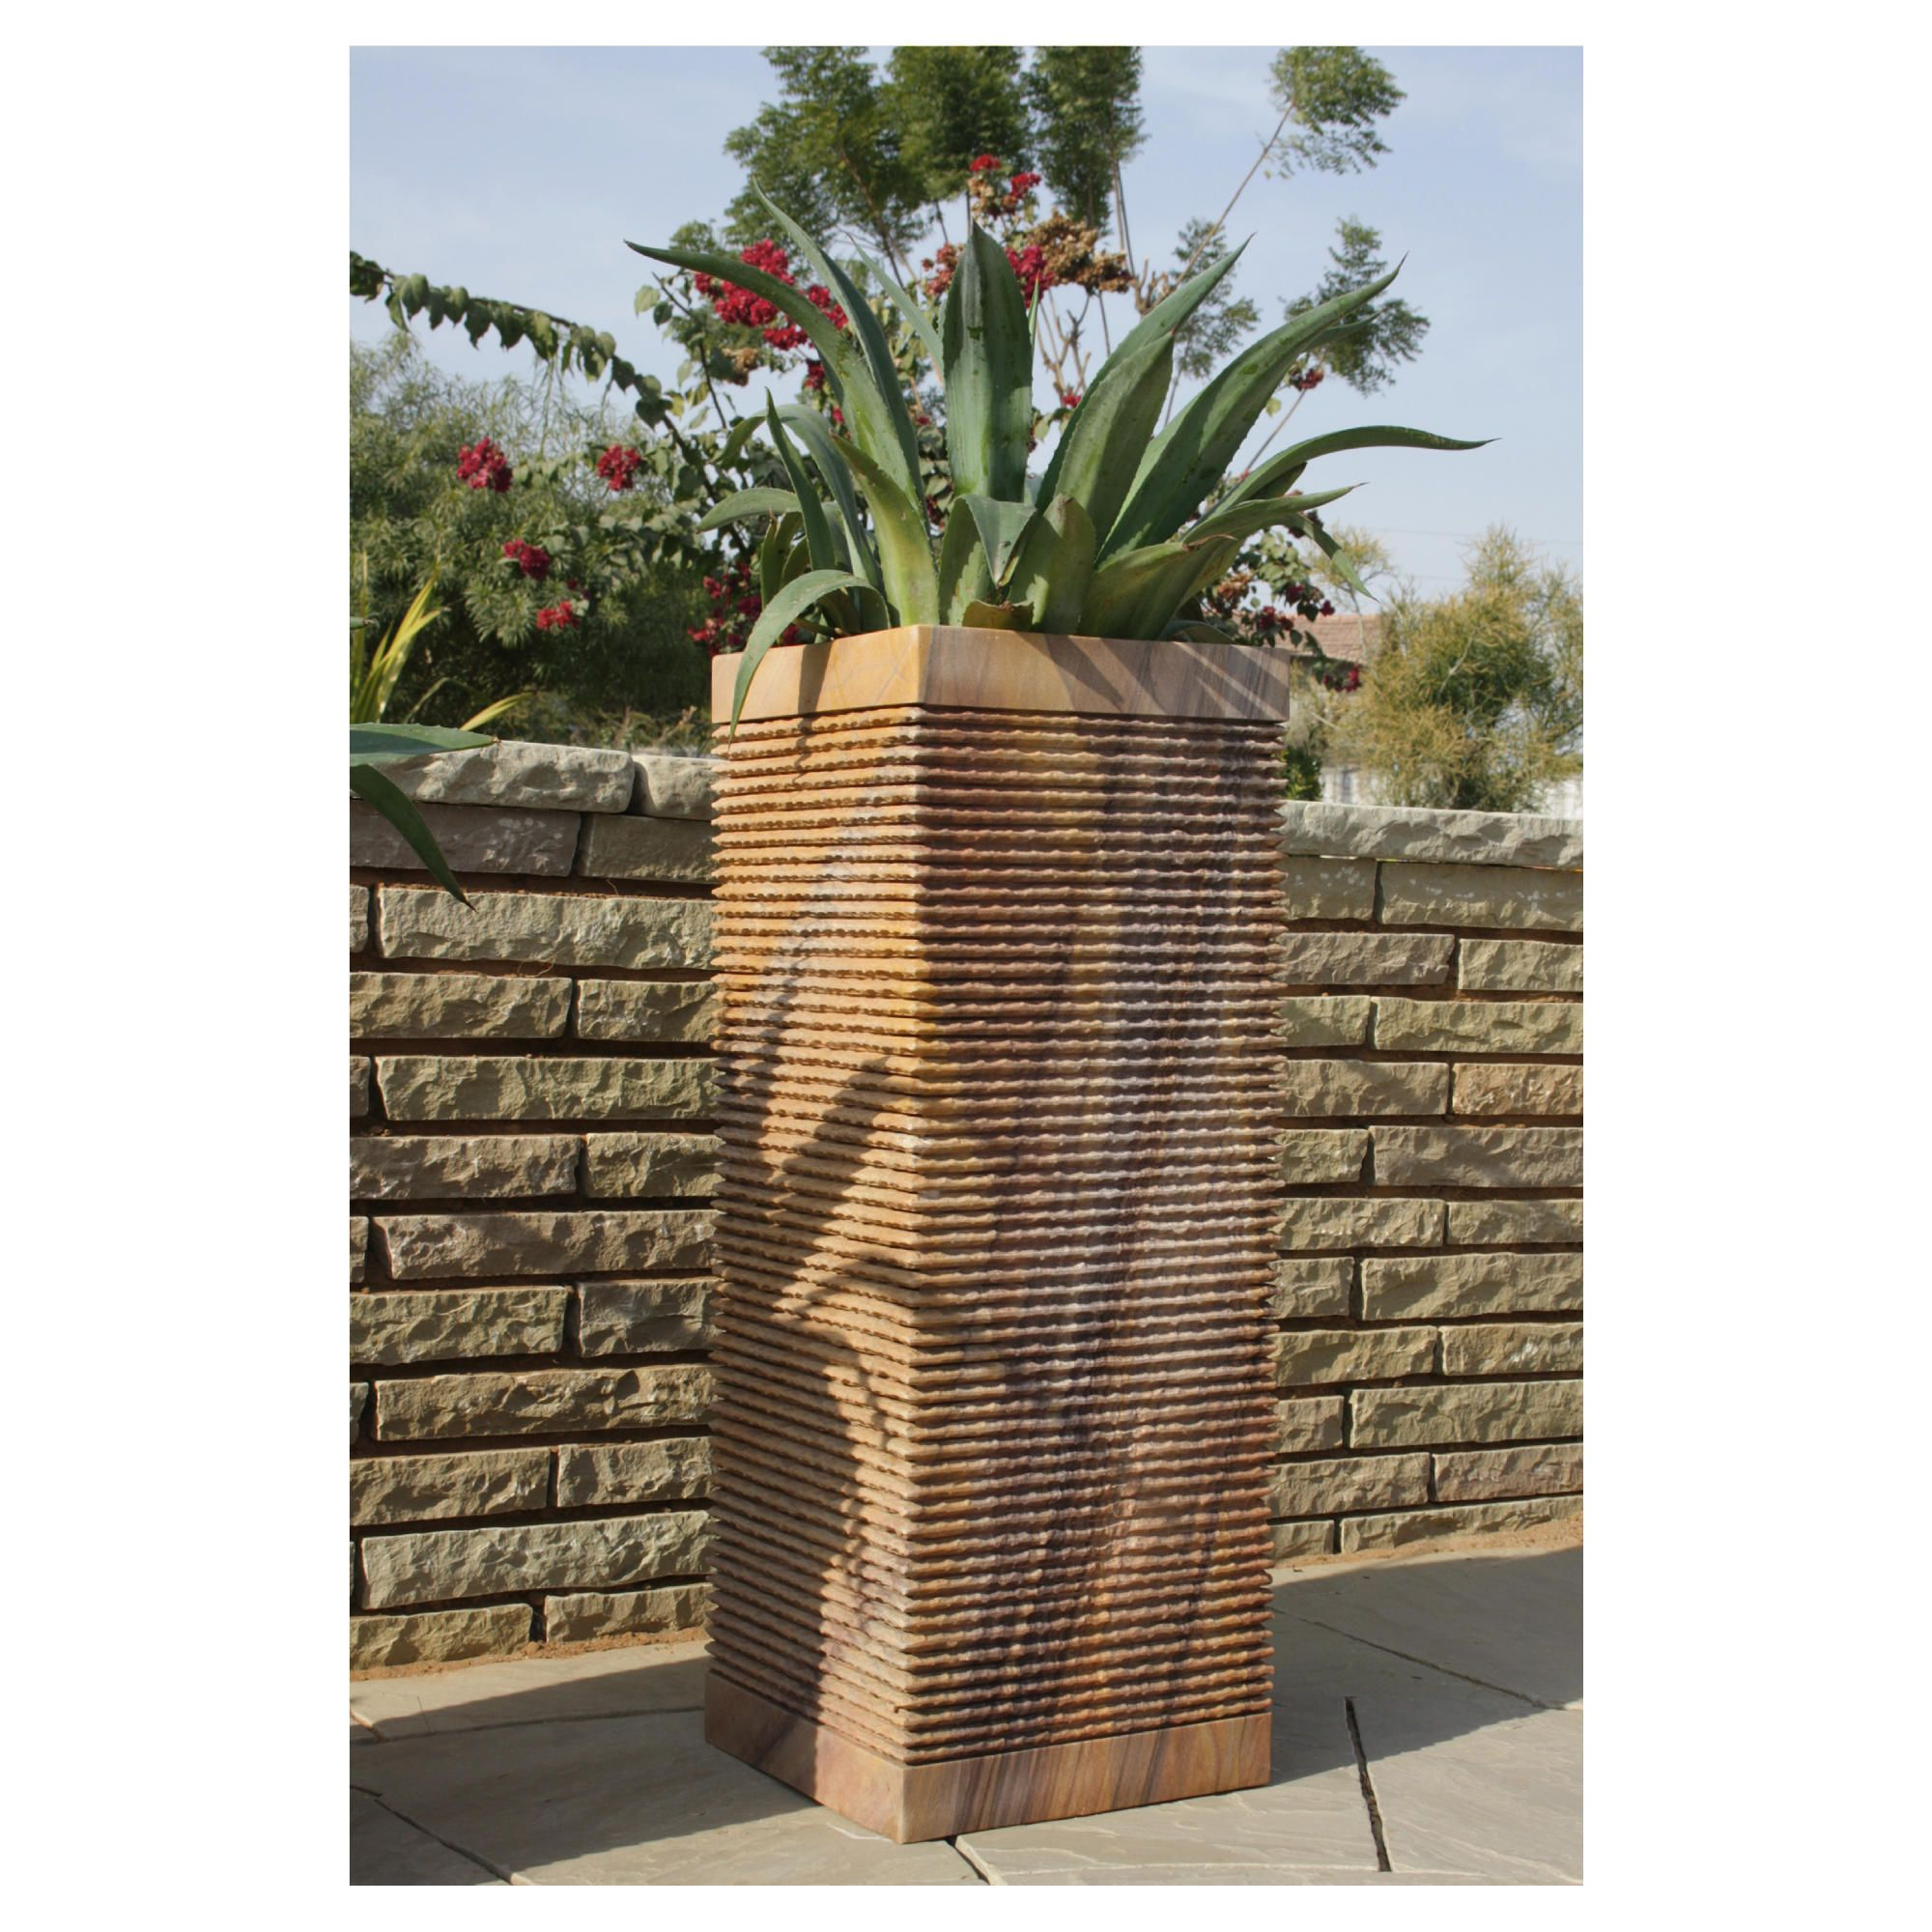 Caelum Rainbow Stone Planter 80cm at Tesco Direct